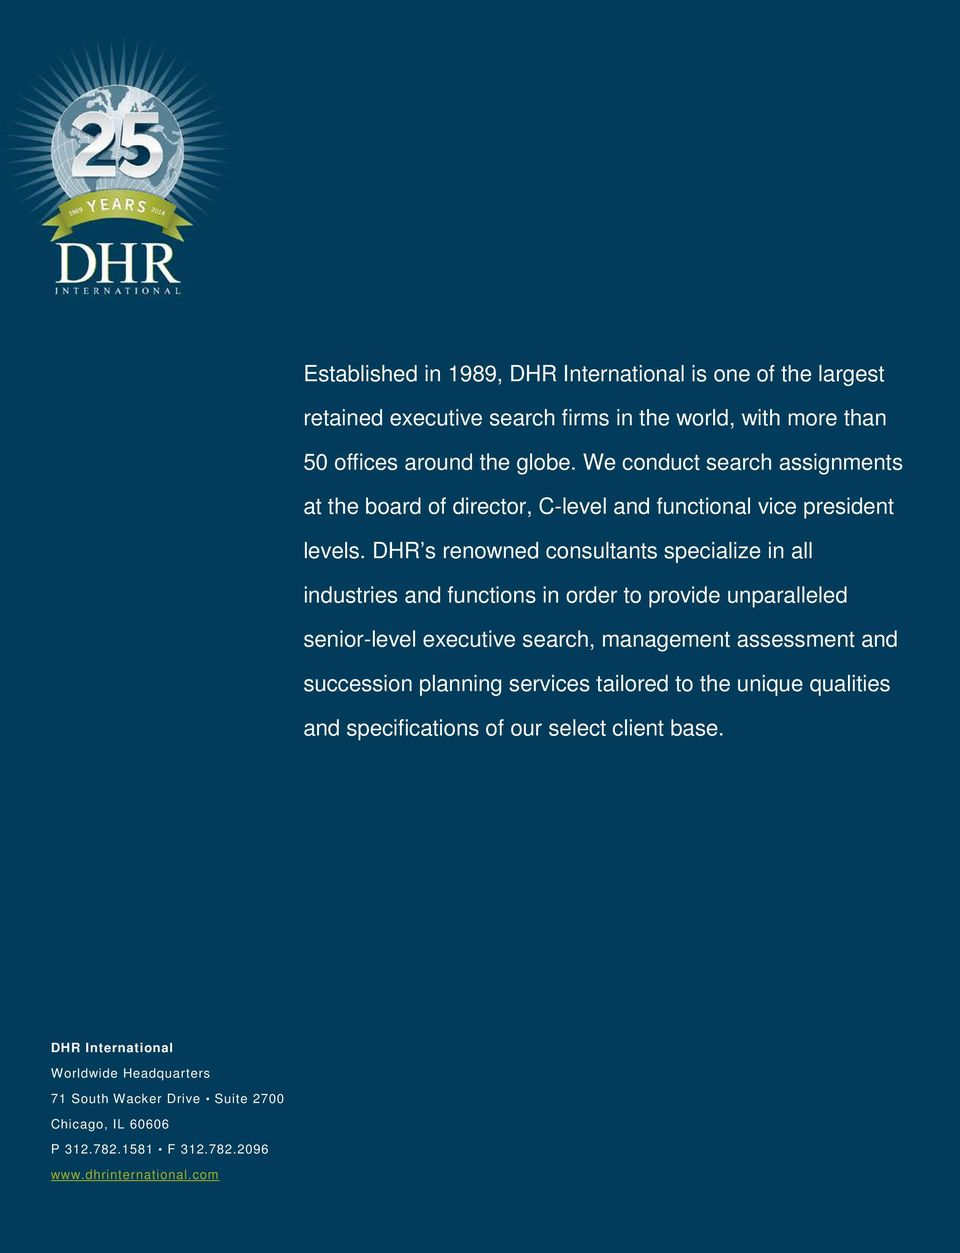 DHR s renowned consultants specialize in all industries and functions in order to provide unparalleled senior-level executive search, management assessment and